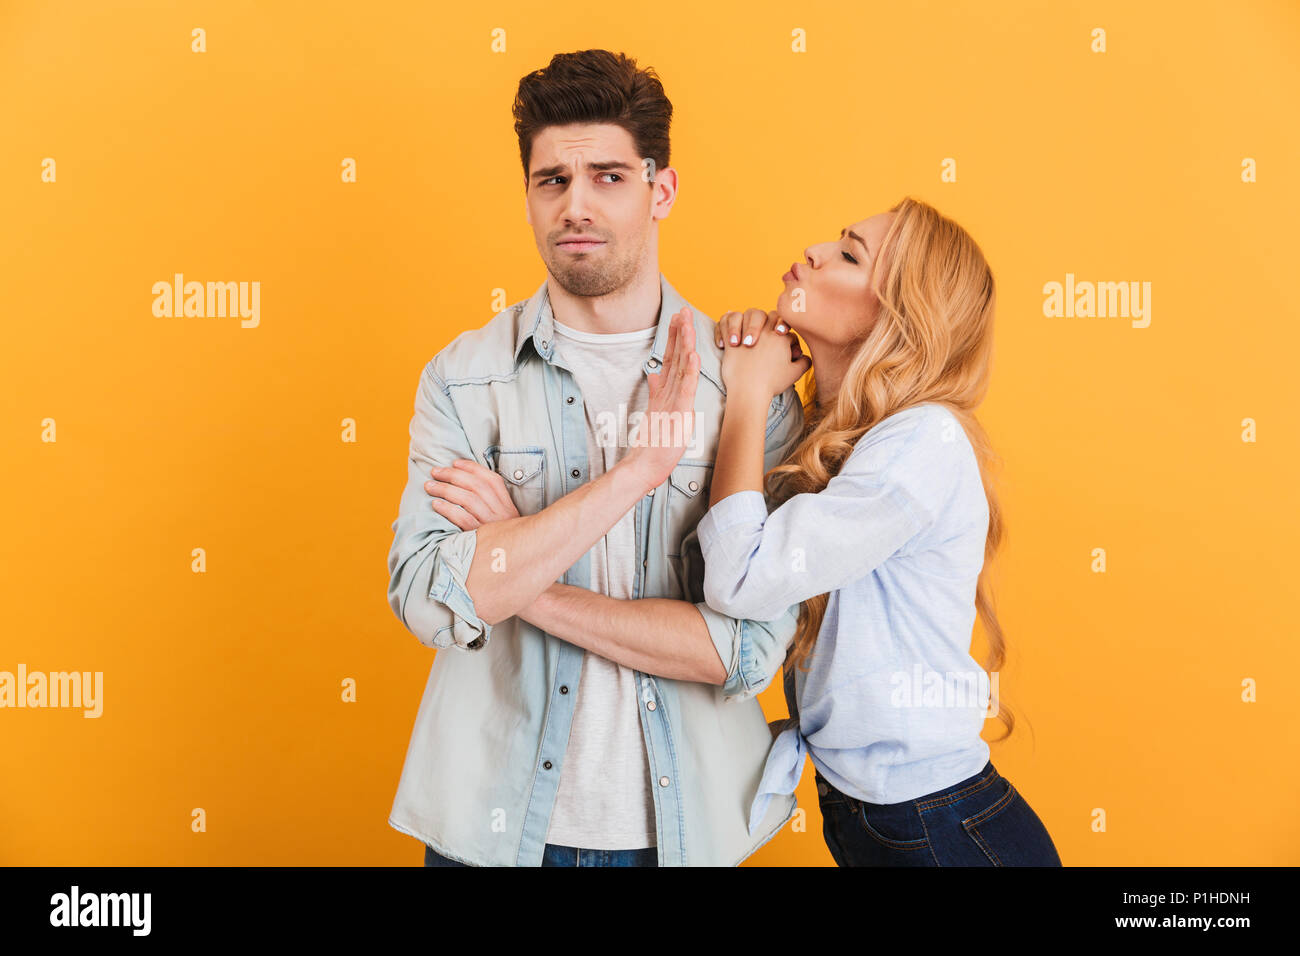 Portrait of young displeased man gesturing to stop with hand while beautiful woman kissing his cheek isolated over yellow background - Stock Image